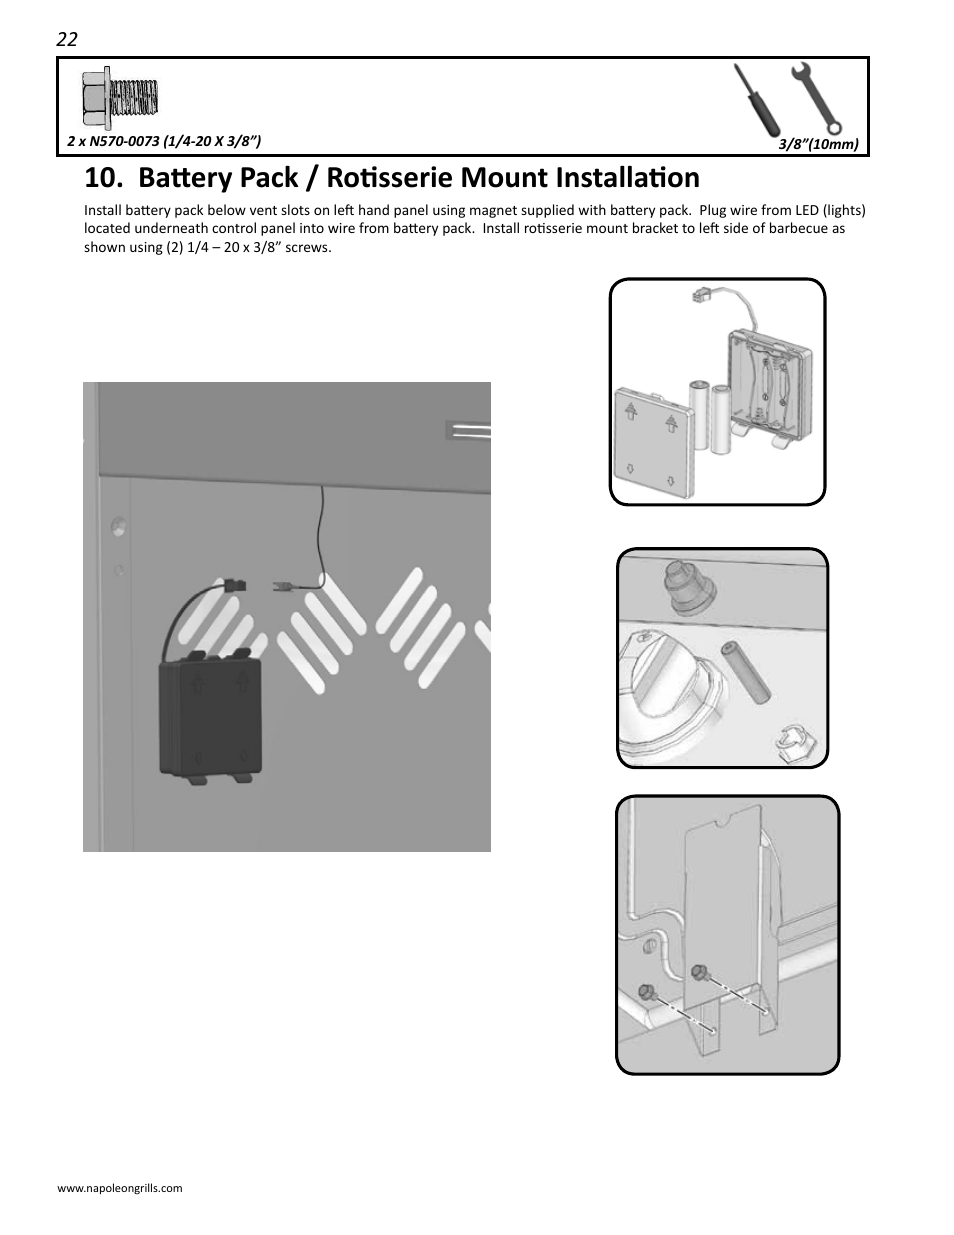 Battery Pack Rotisserie Mount Installation Napoleon Grills Pole Mounted Controller Wiring Diagram Ld485rsib User Manual Page 22 40